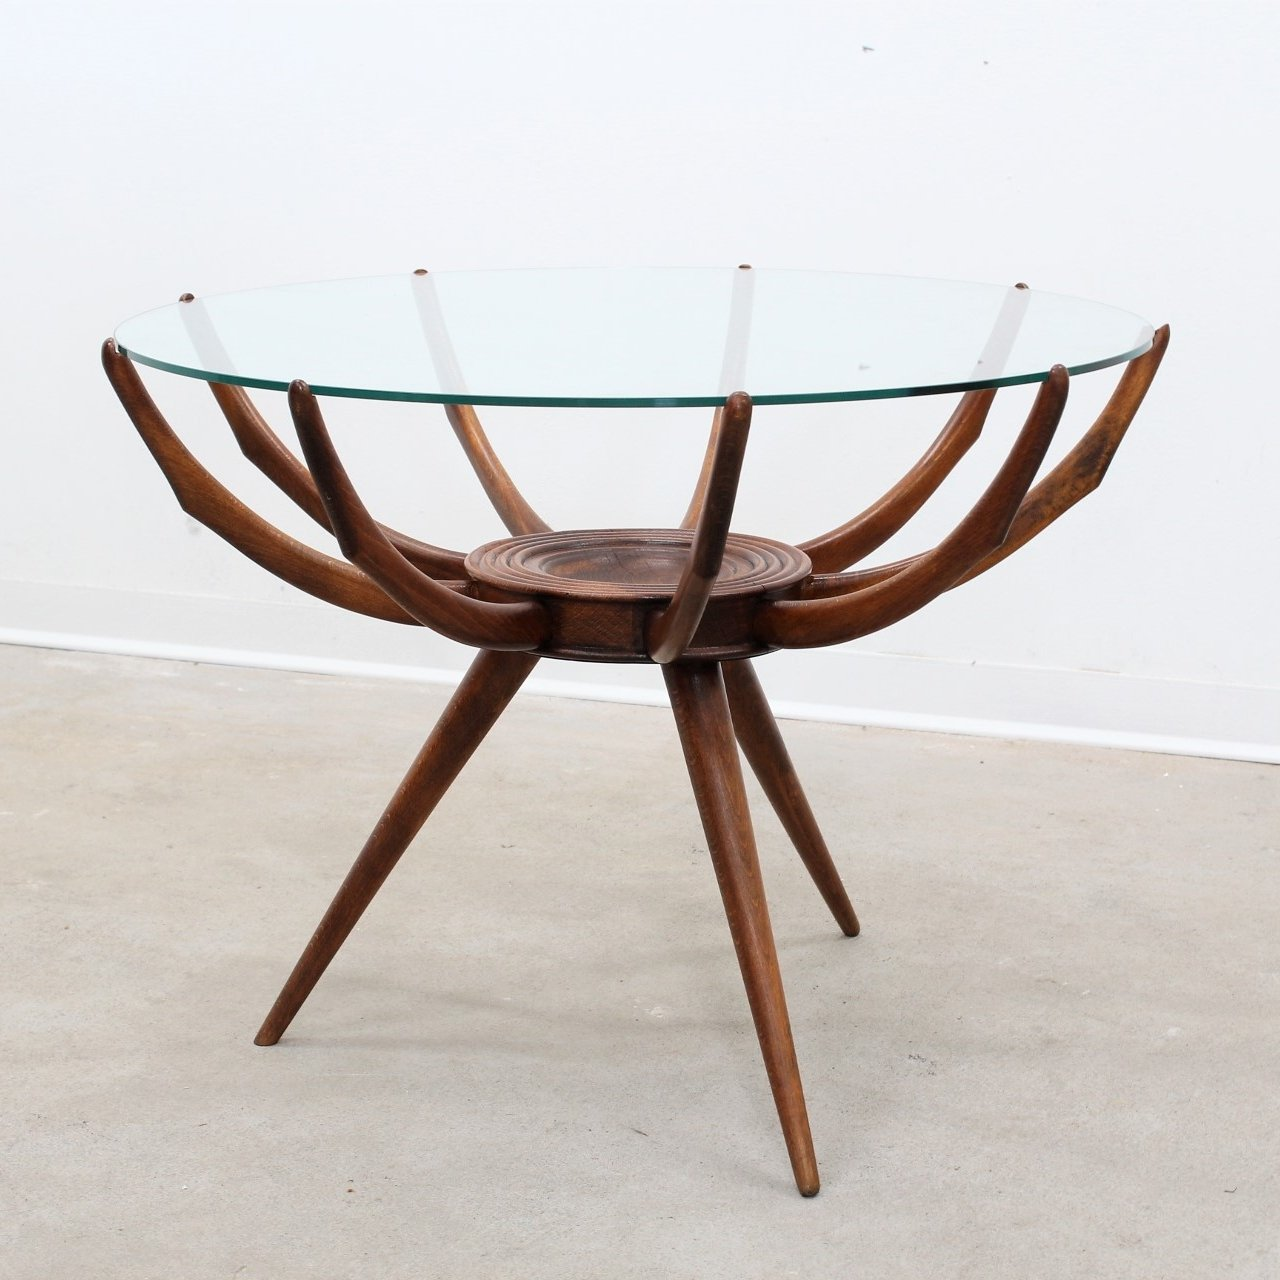 Ragno Spider Coffee Table From The Fifties By Carlo De